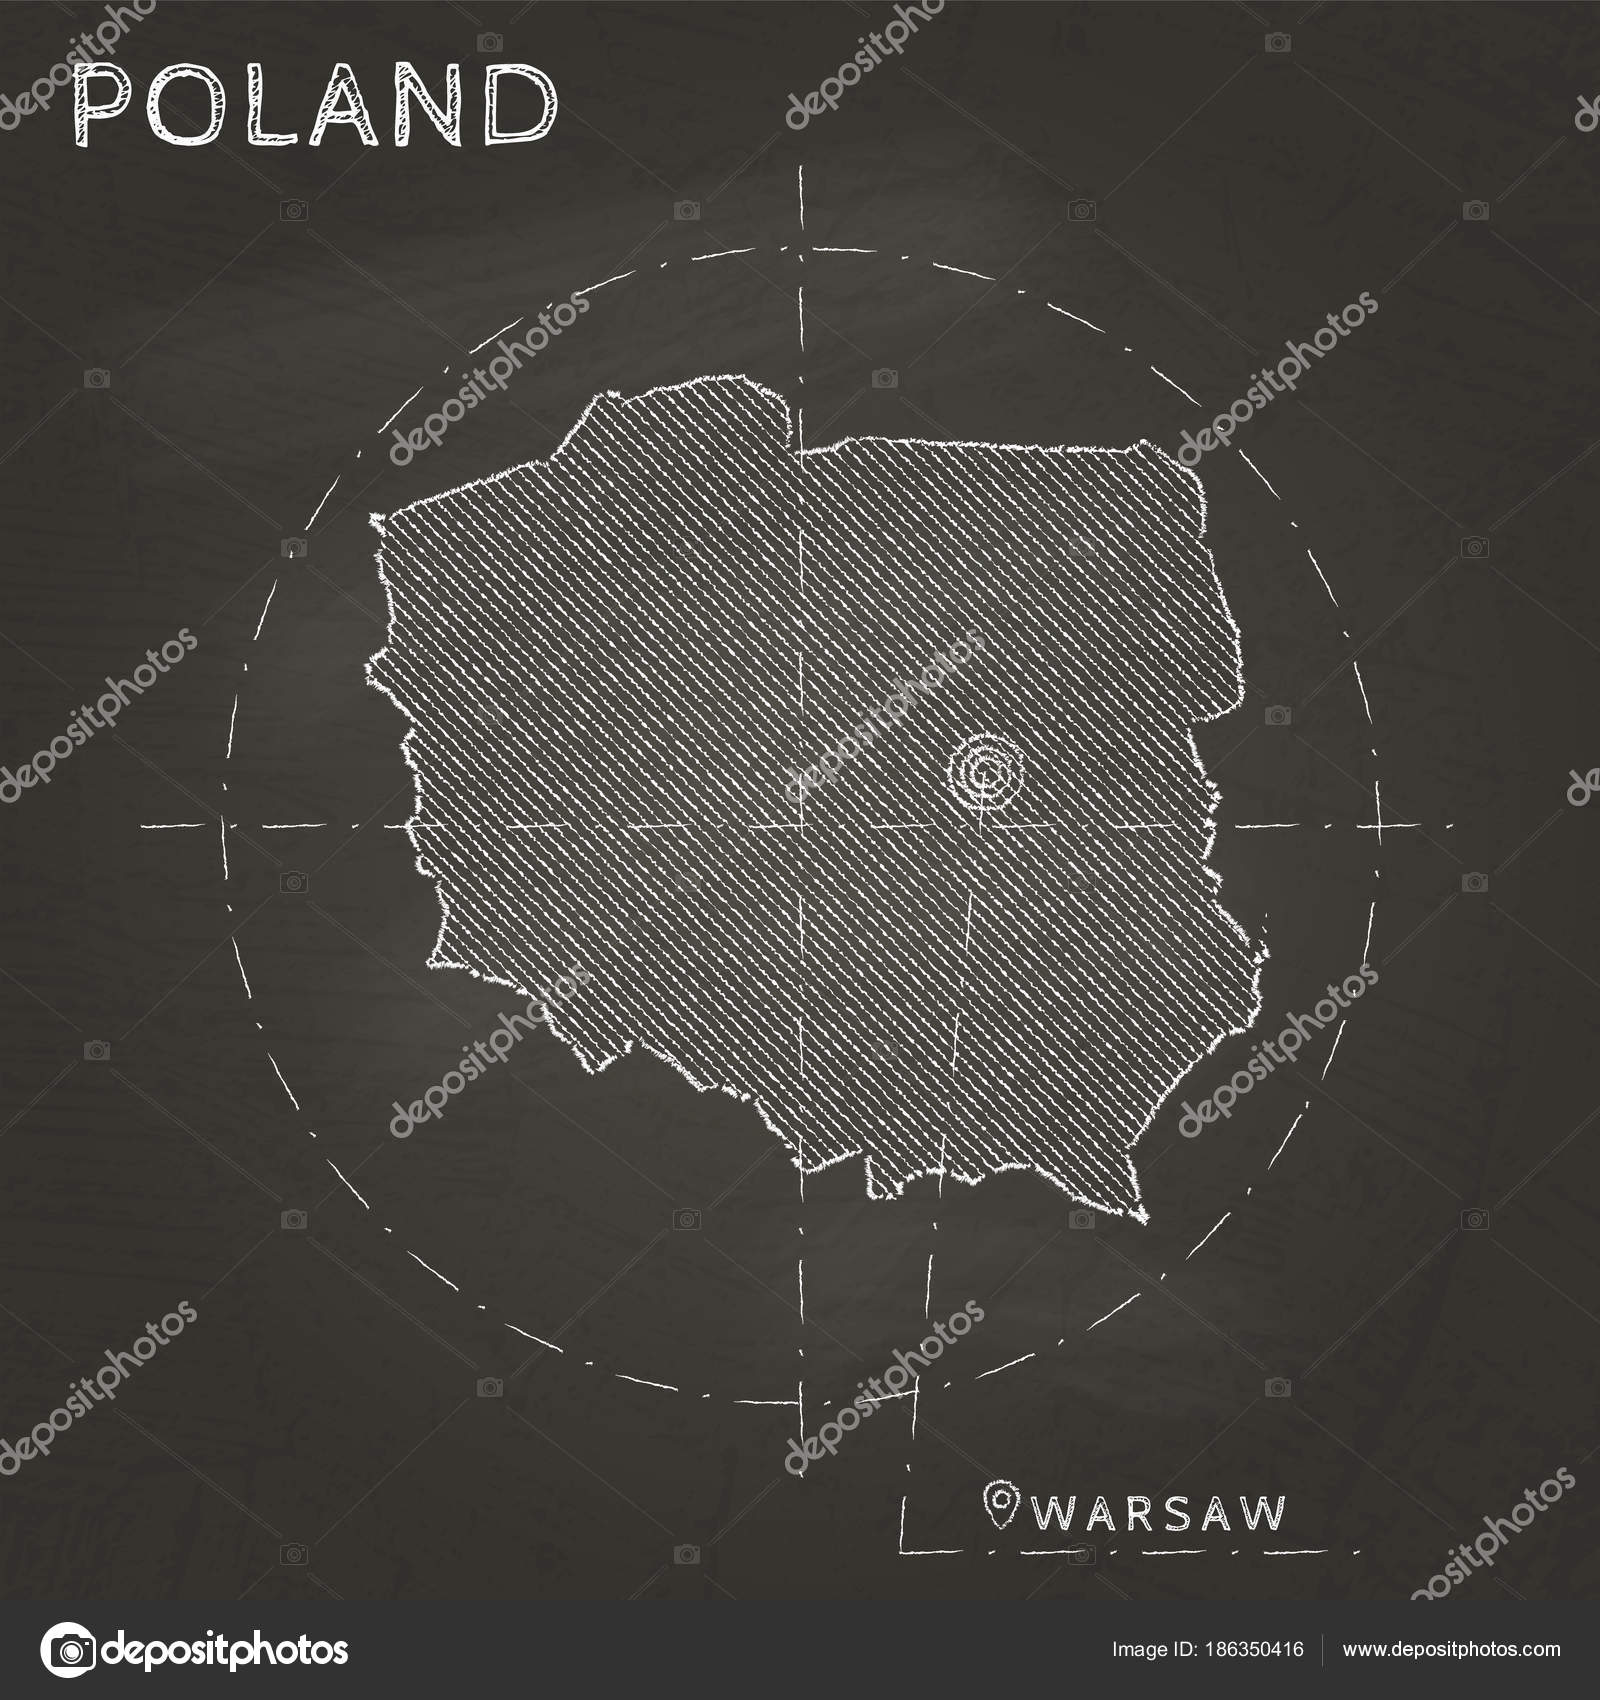 Capital Of Poland Map.Poland Chalk Map With Capital Marked Hand Drawn On Textured School